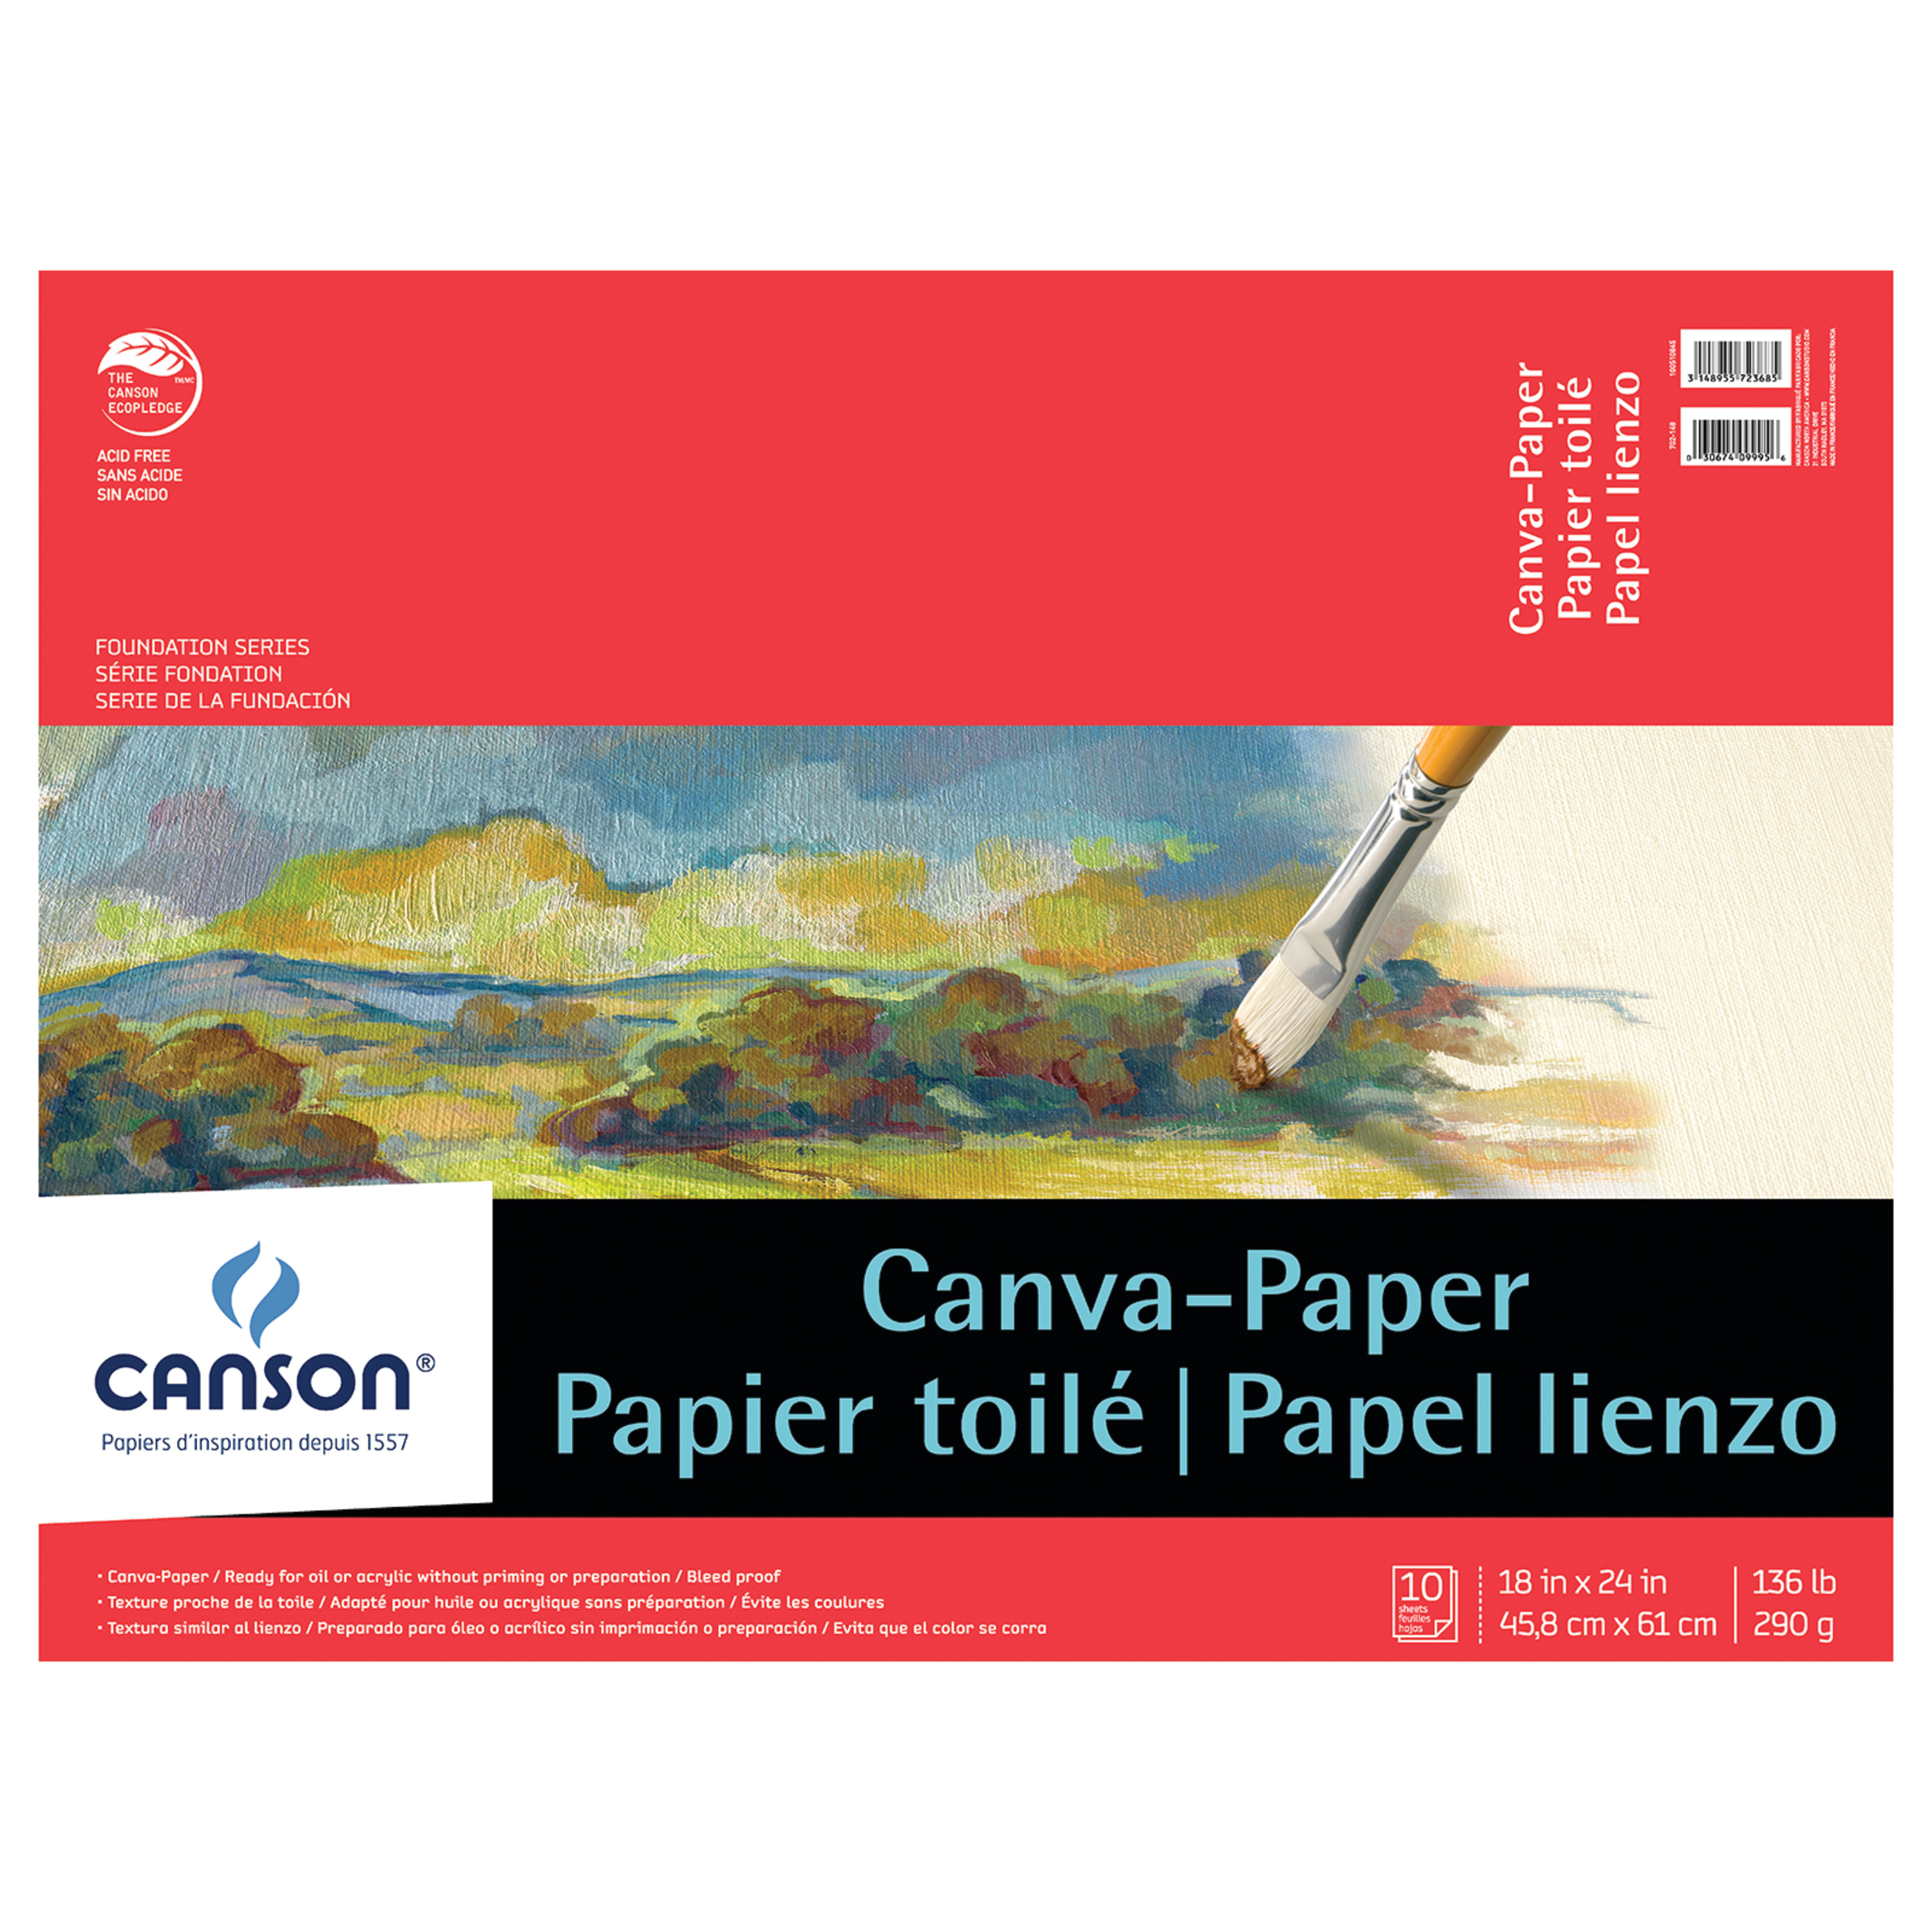 Canson Foundation Series Canva-Paper Pad, 18in x 24in